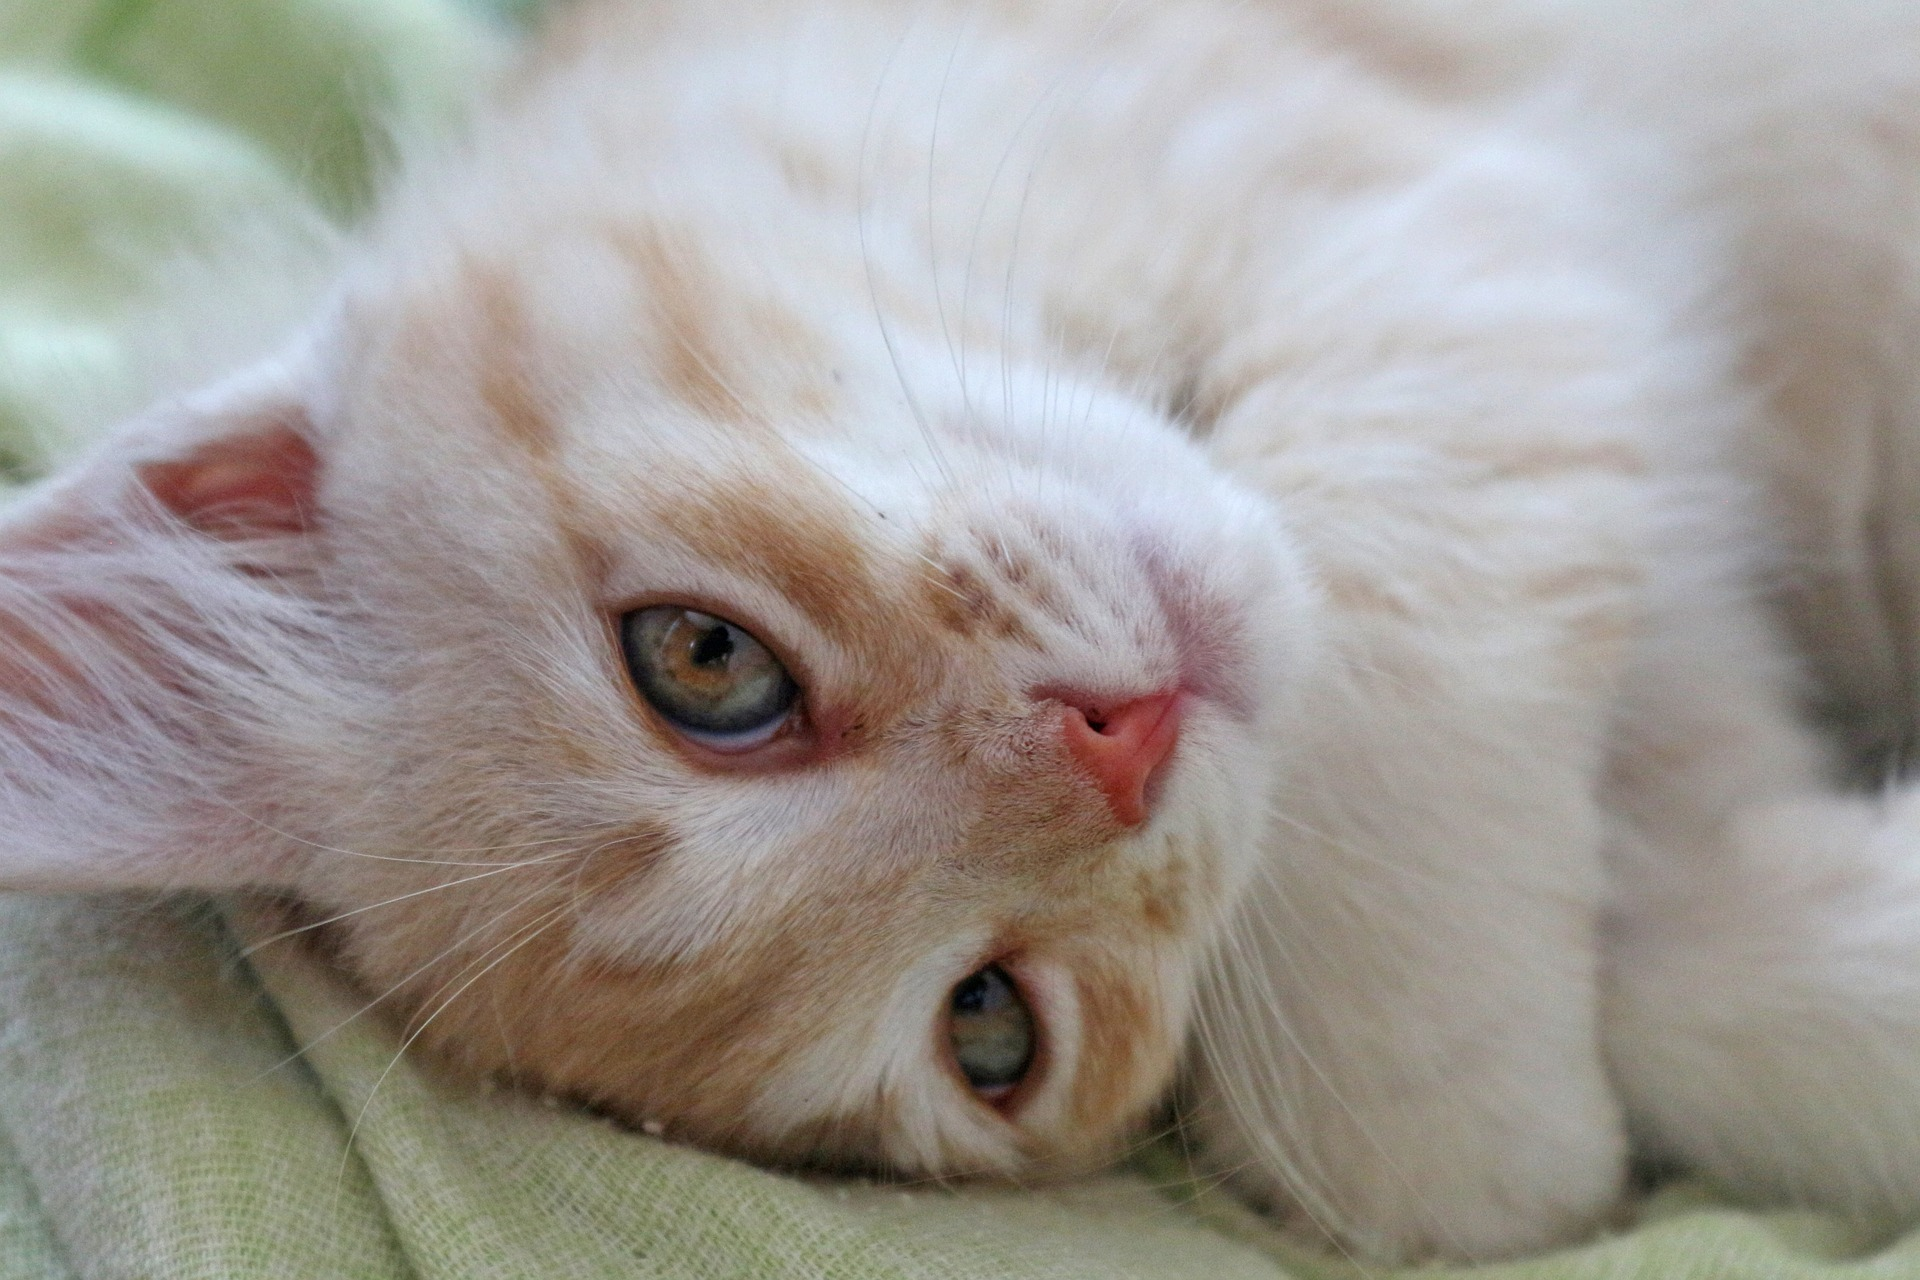 10 Signs Your Cat is the Worst Roommate Ever